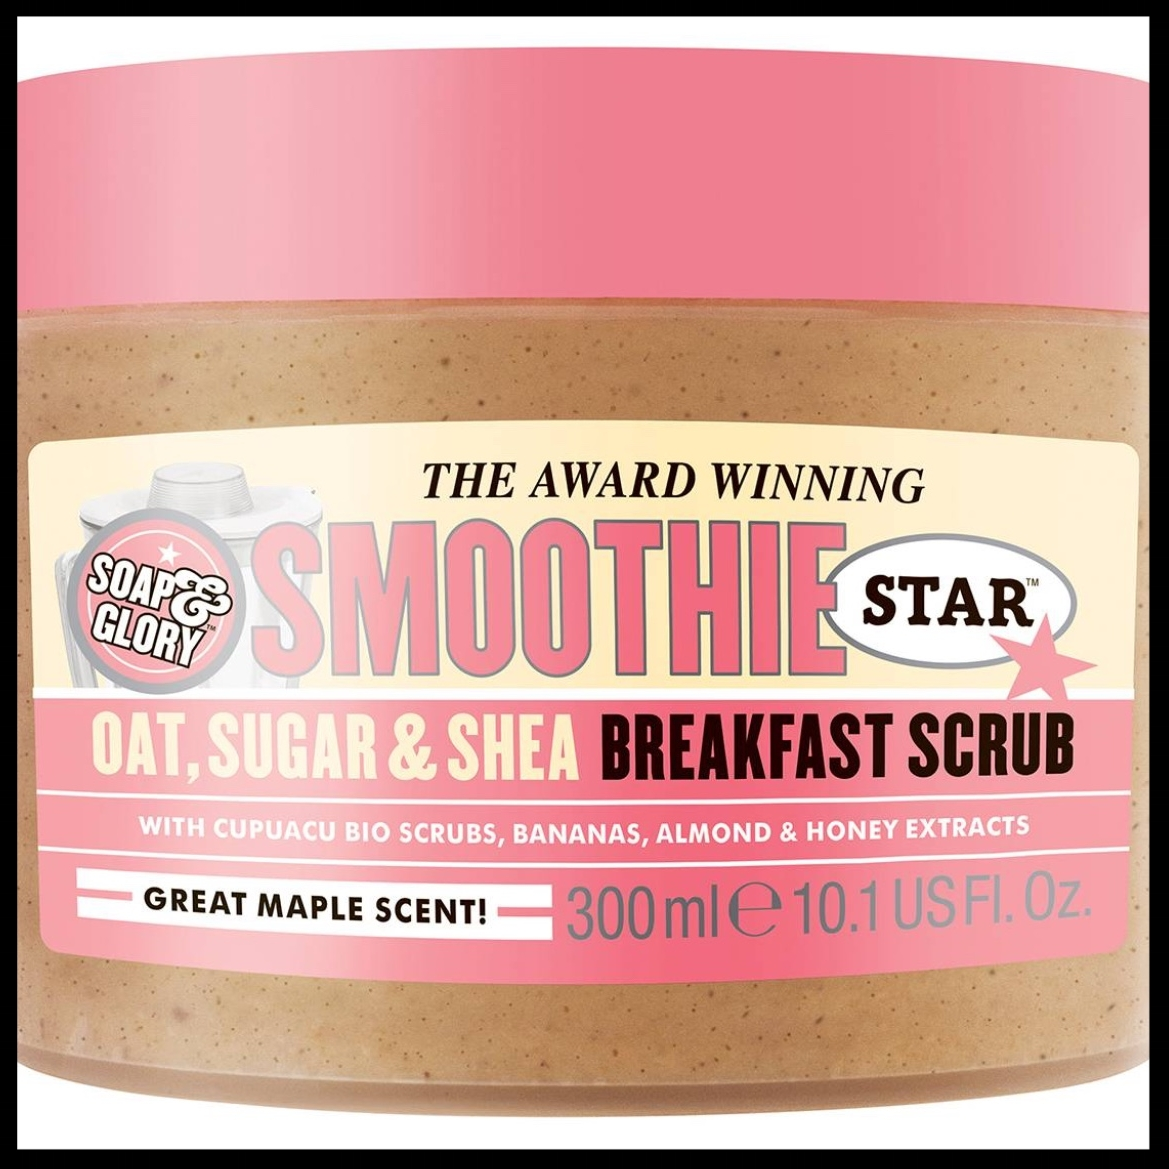 Soap & Glory® Smoothie Star Breakfast Scrub - $13.99 - Brisk, cold winter weather got the lady in your life down? Revive tired winter skin with the Smoothie Star Breakfast Scrub by Soap & Glory. Polish, smooth and moisturize your skin all at once with this Smoothie Star Breakfast Scrub from Soap & Glory. The perfect gift for a lady who likes to treat herself.